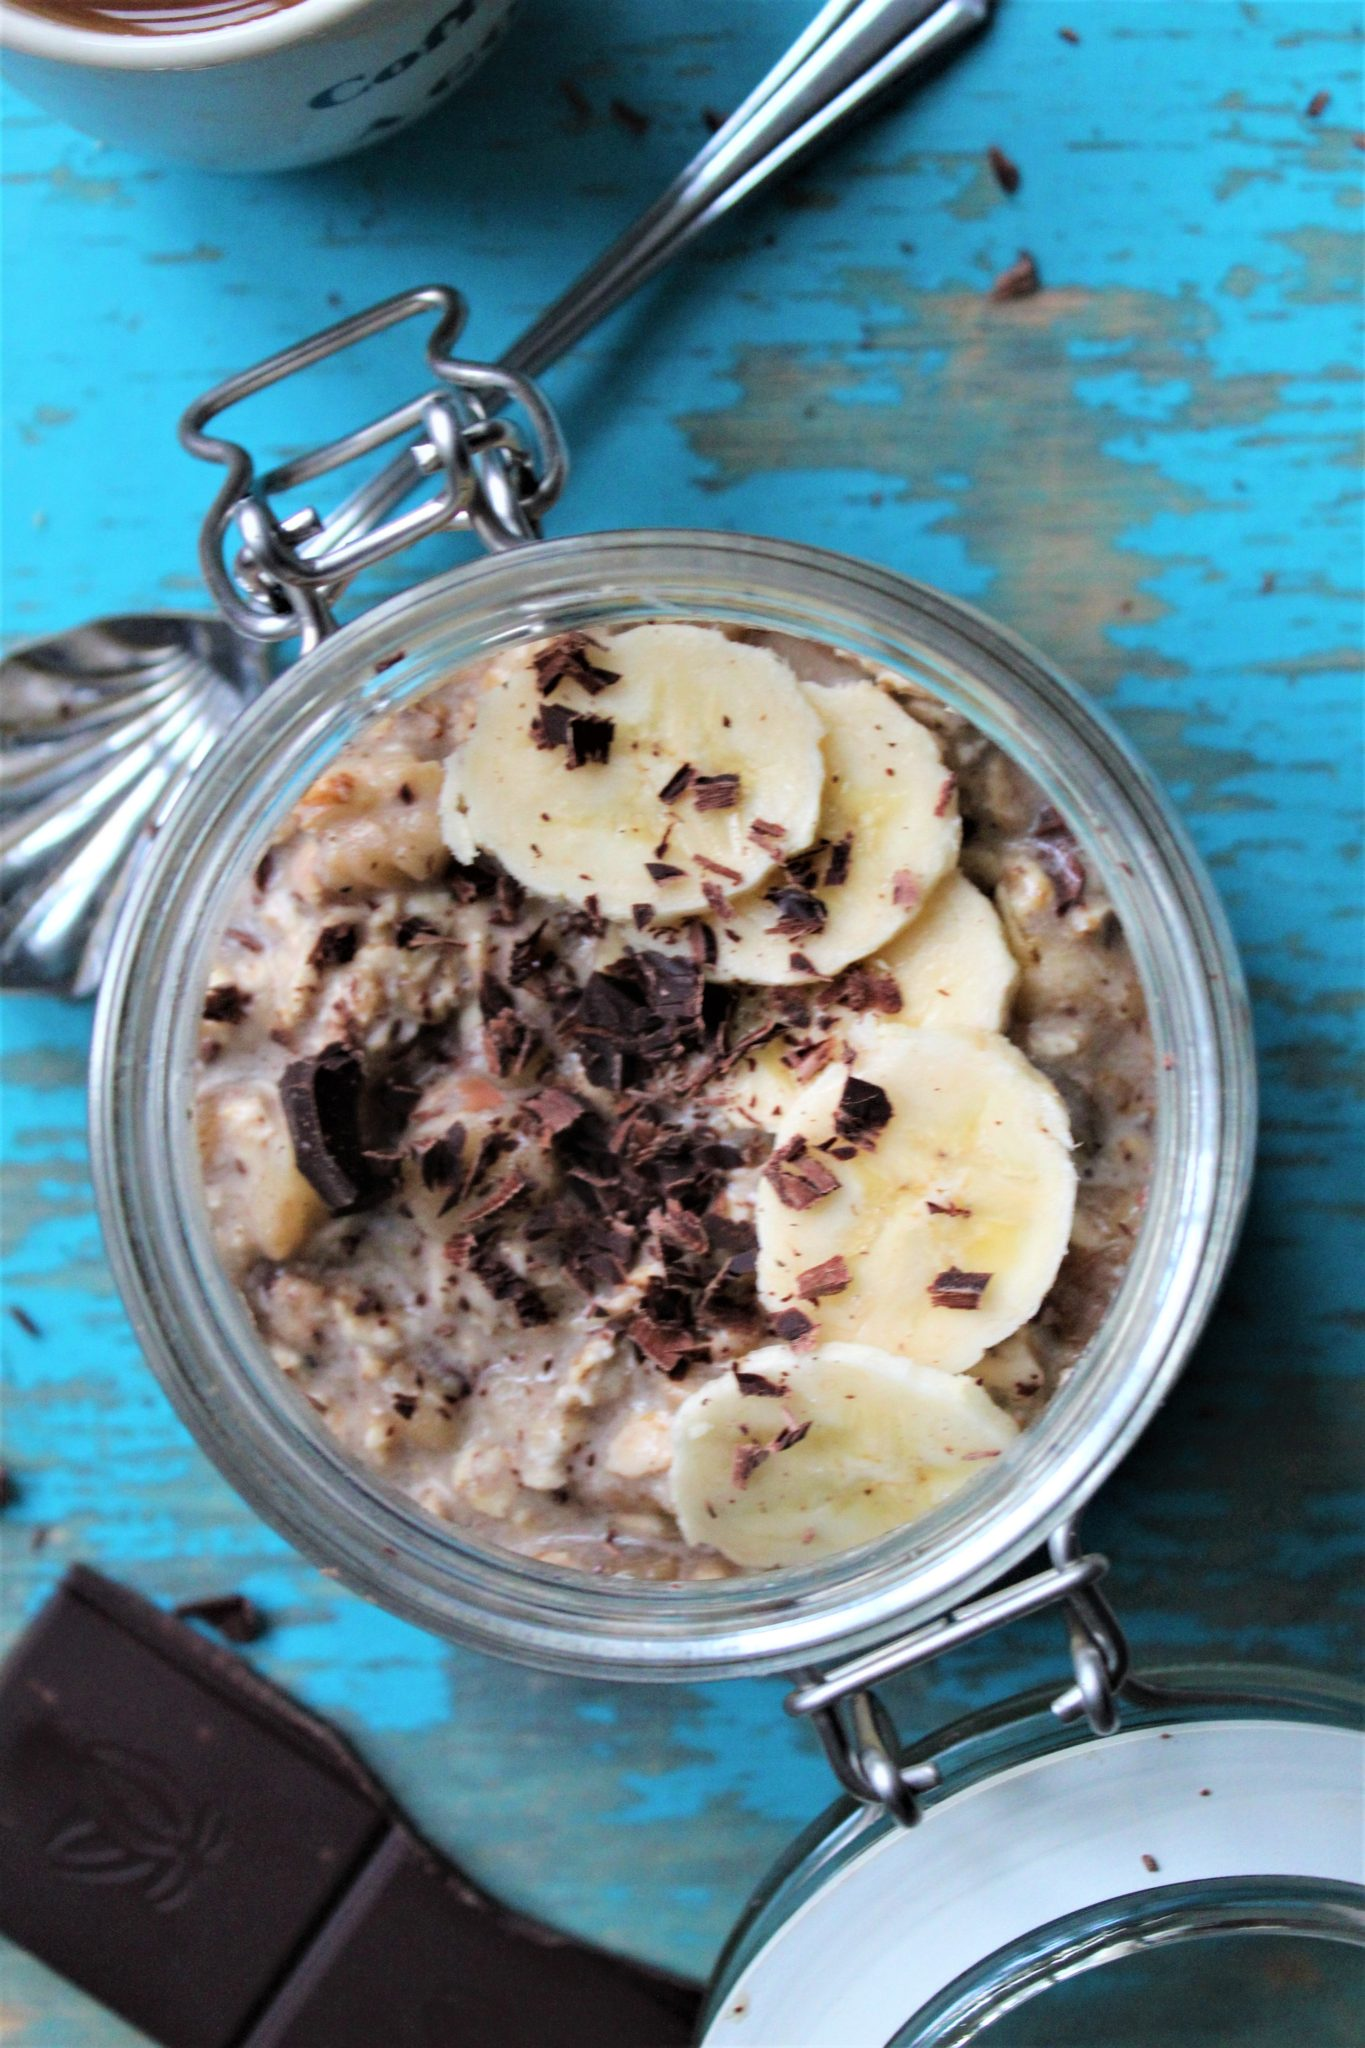 Banankage overnight oats